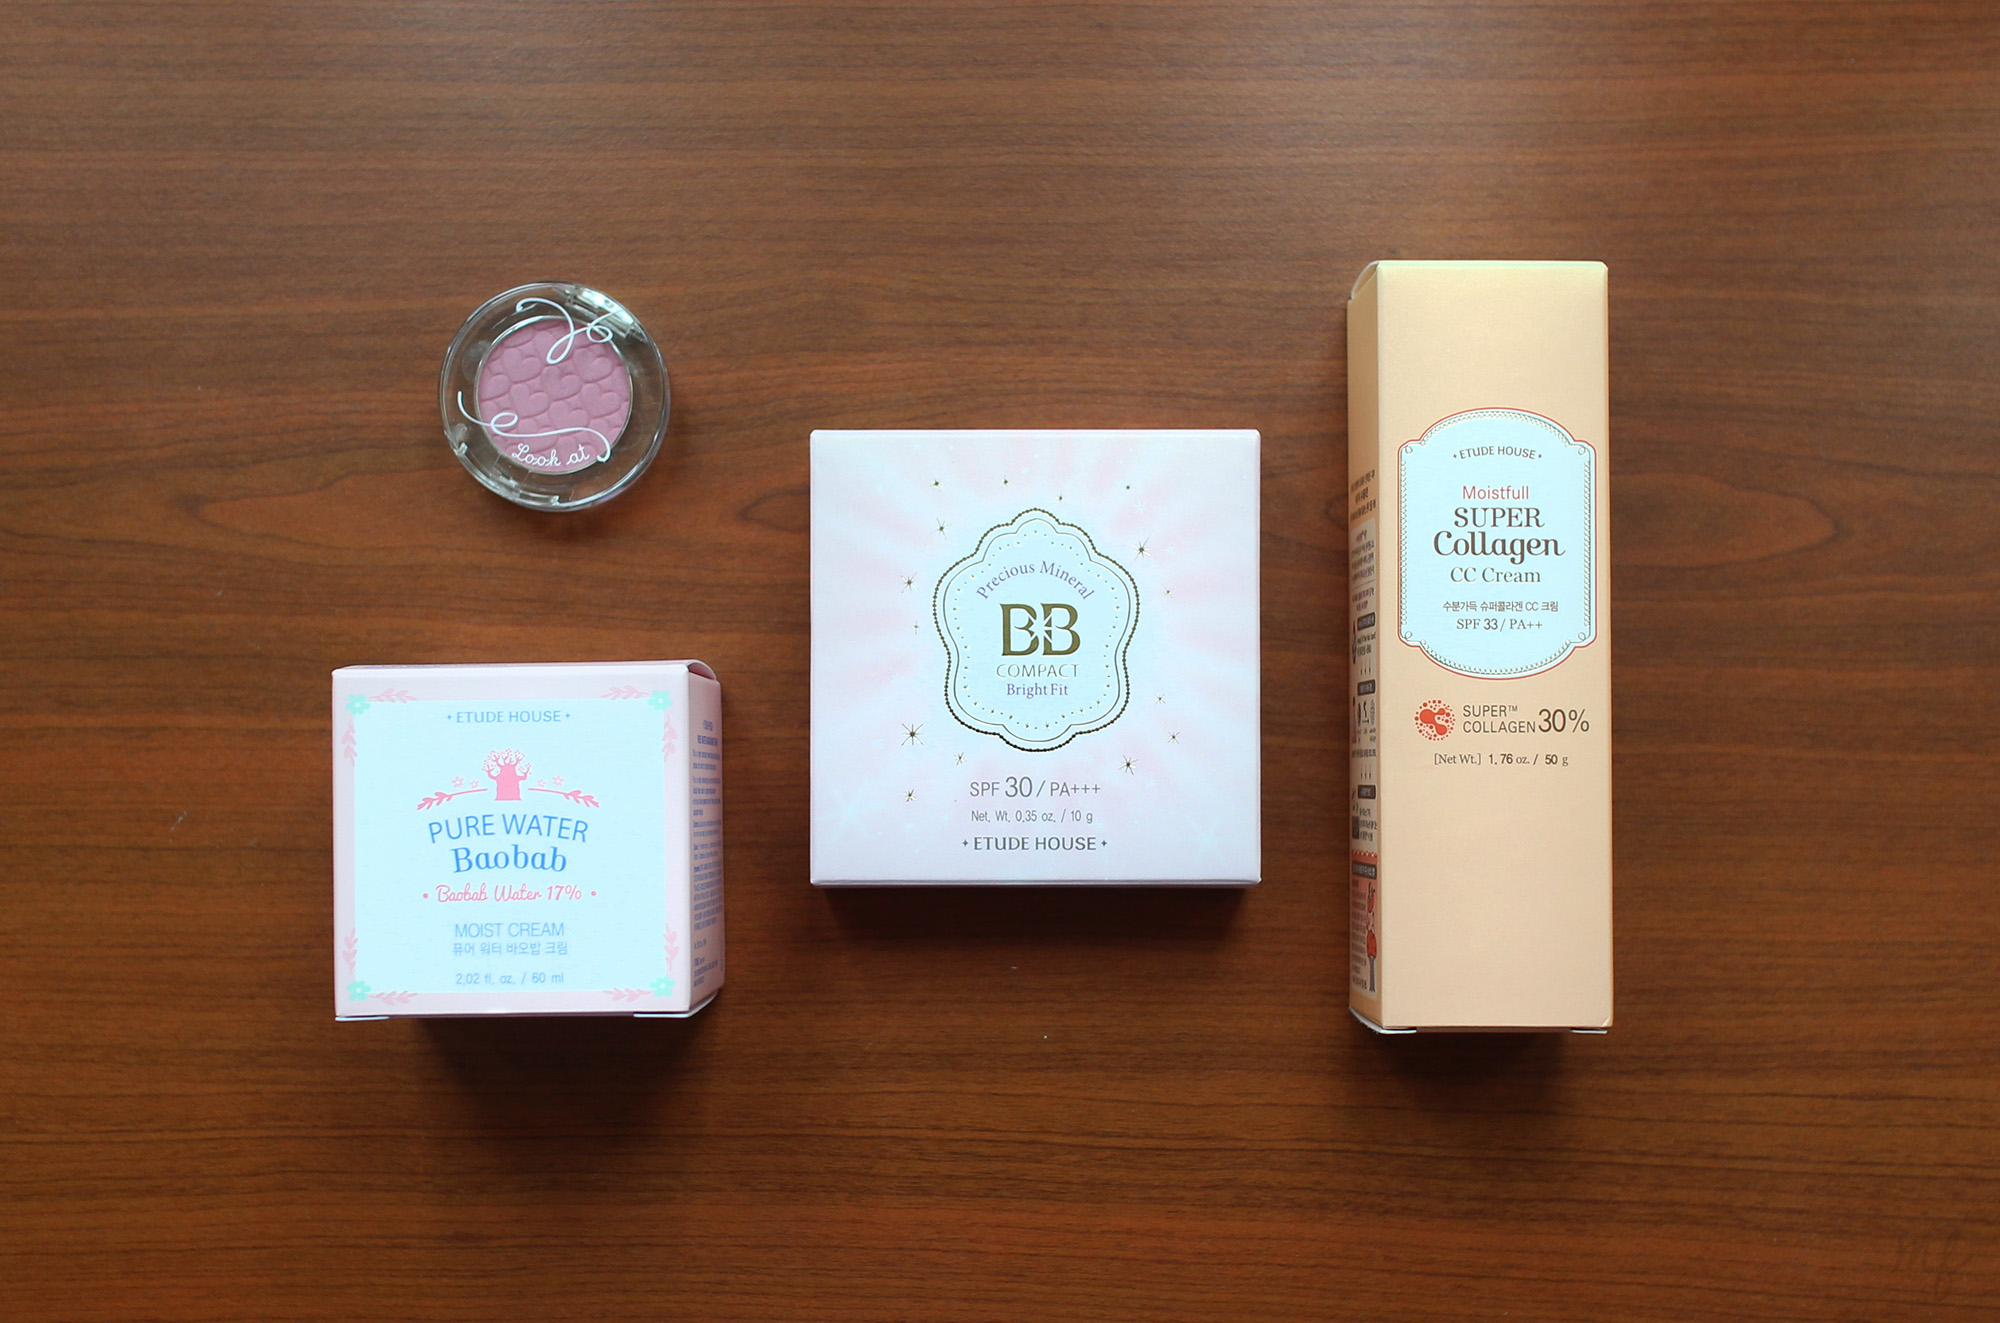 Etude House Milliefeuille Colorful Scent Eau De Perfume Roll On Img 4909